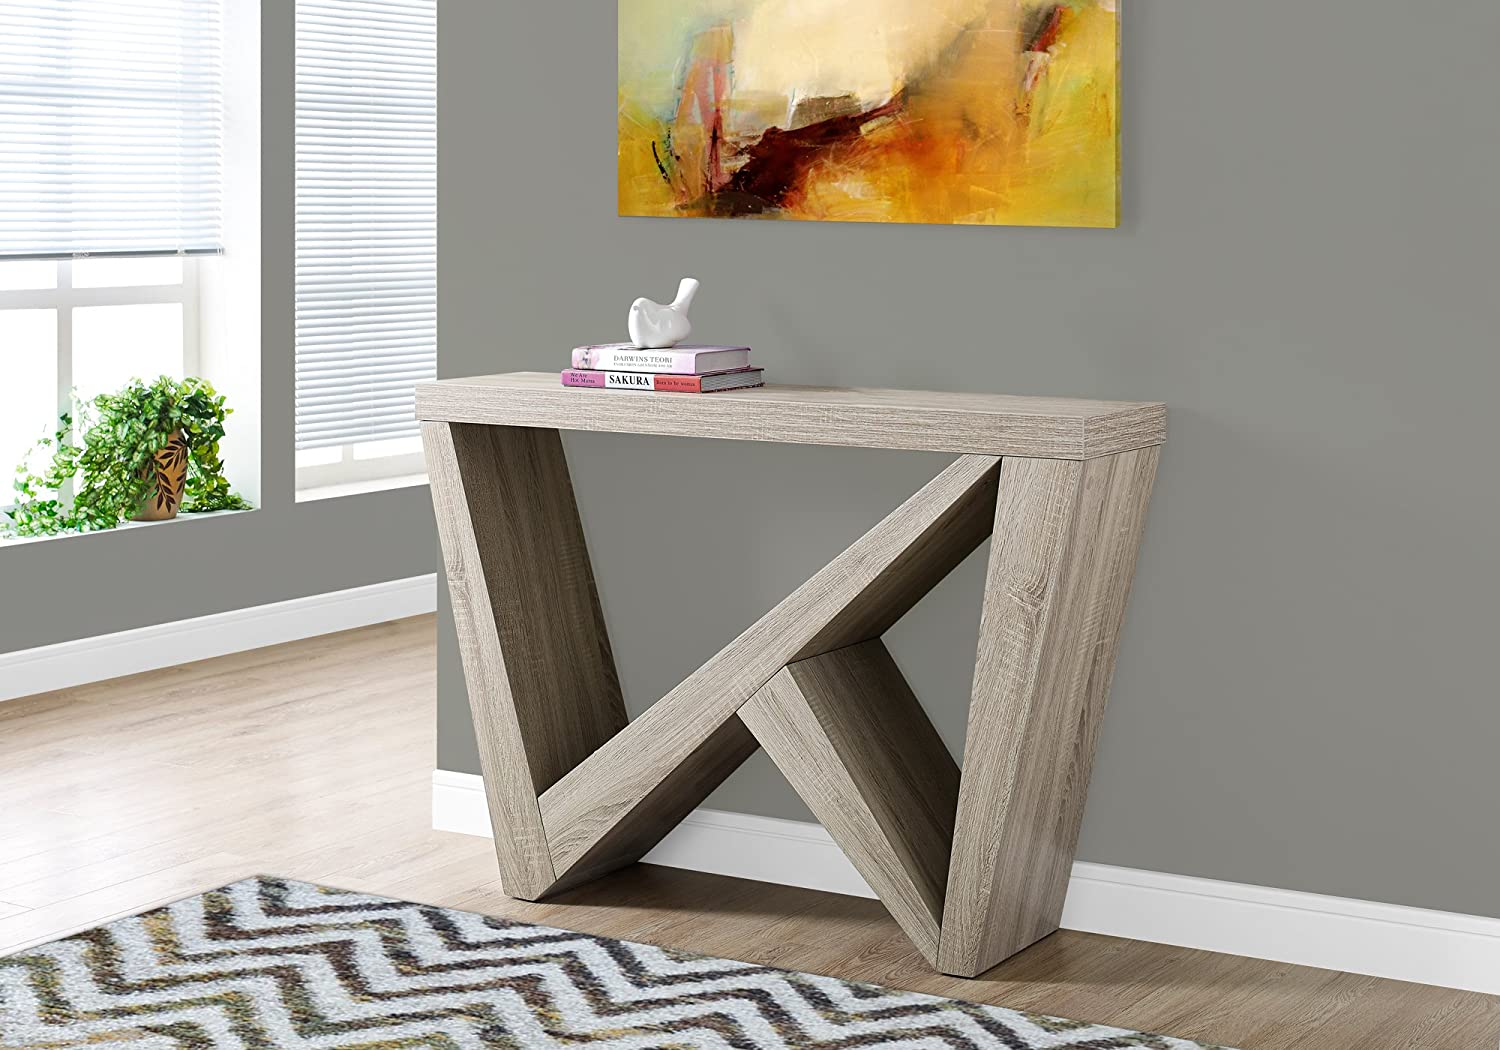 Monarch Specialties I 2434 Cappuccino Hall Console Accent Table, 48 48